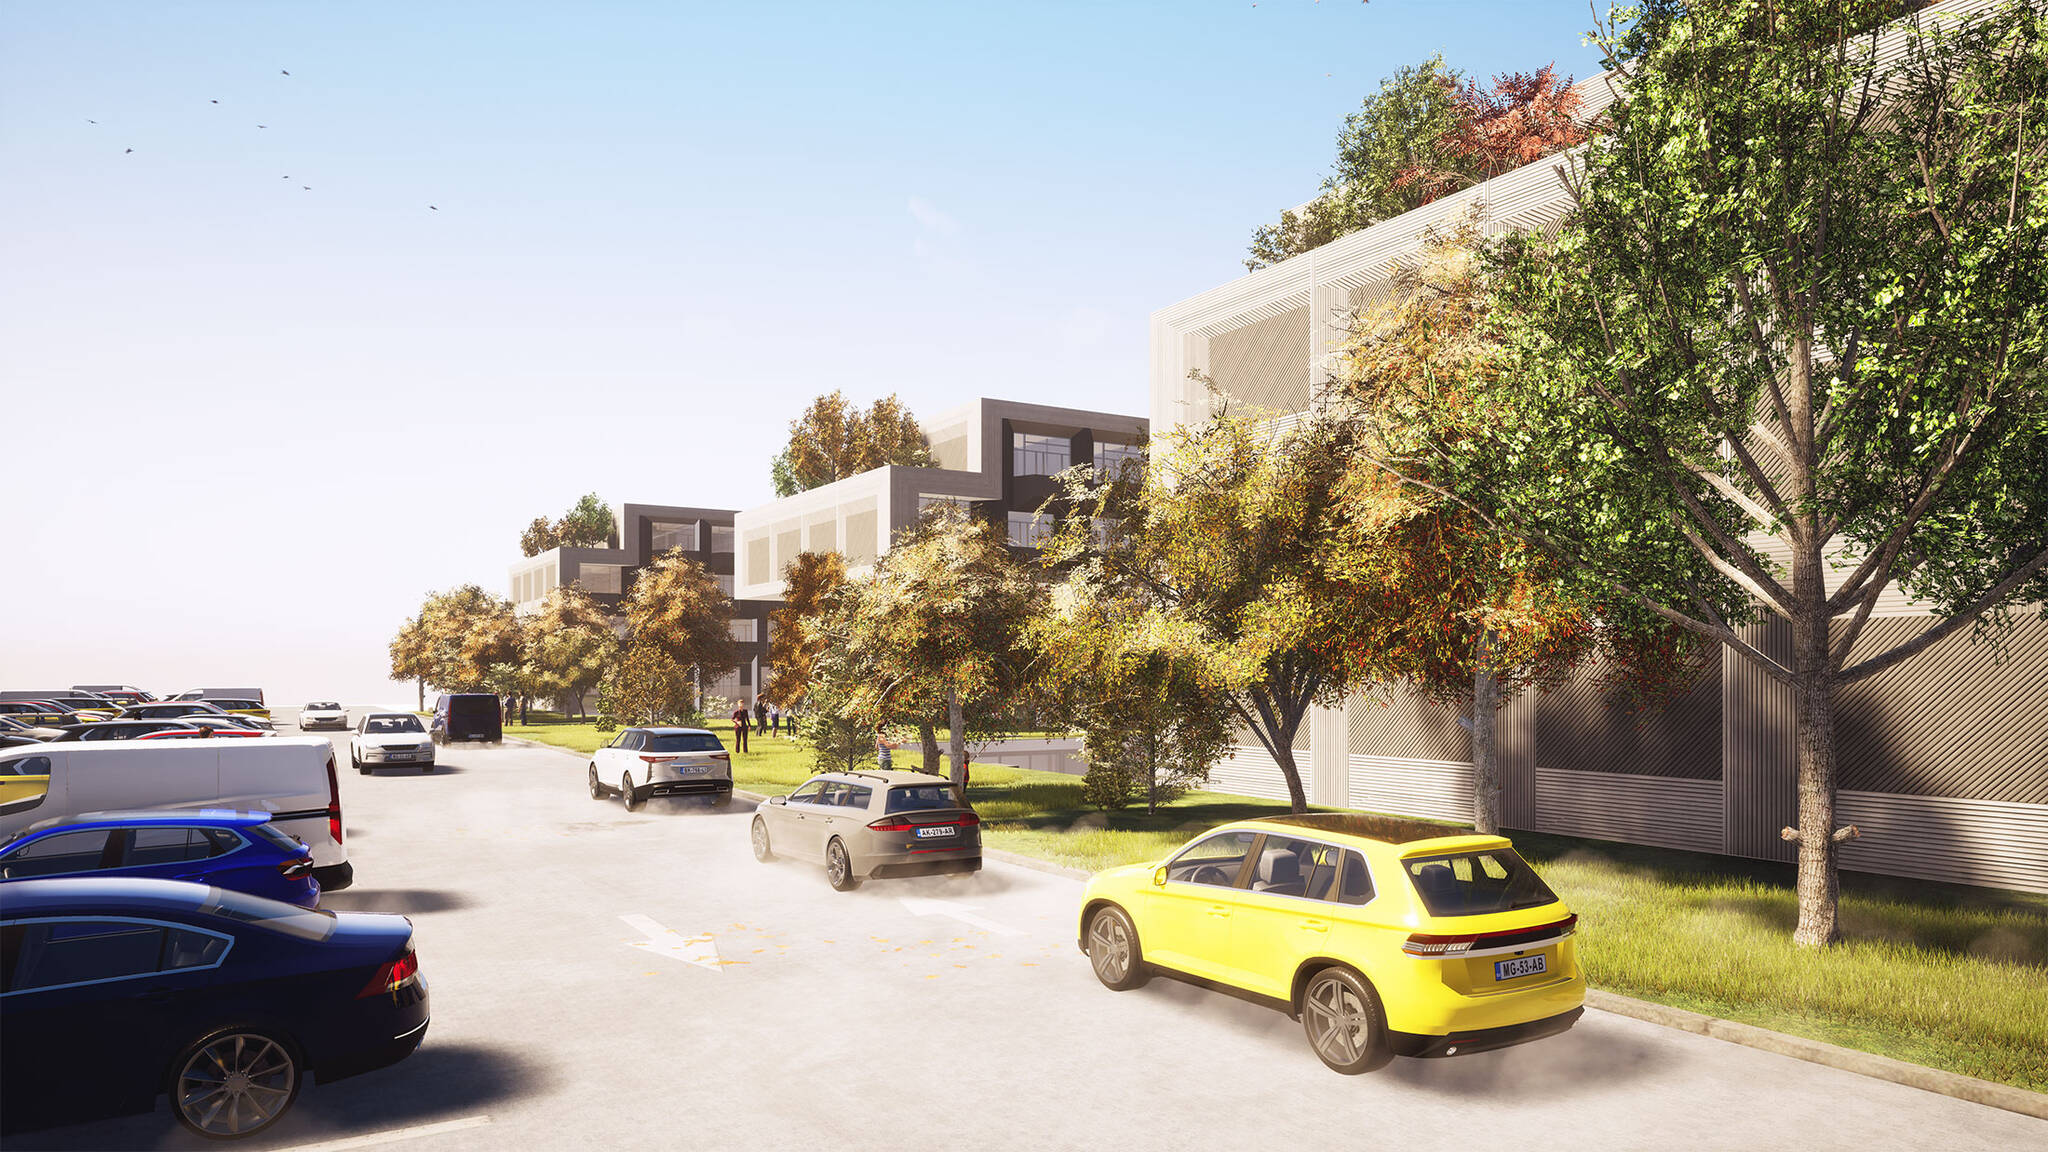 Parking lot rendering of the Jericho Plaza Hotel project in Jericho, New York designed by the architecture studio Danny Forster & Architecture